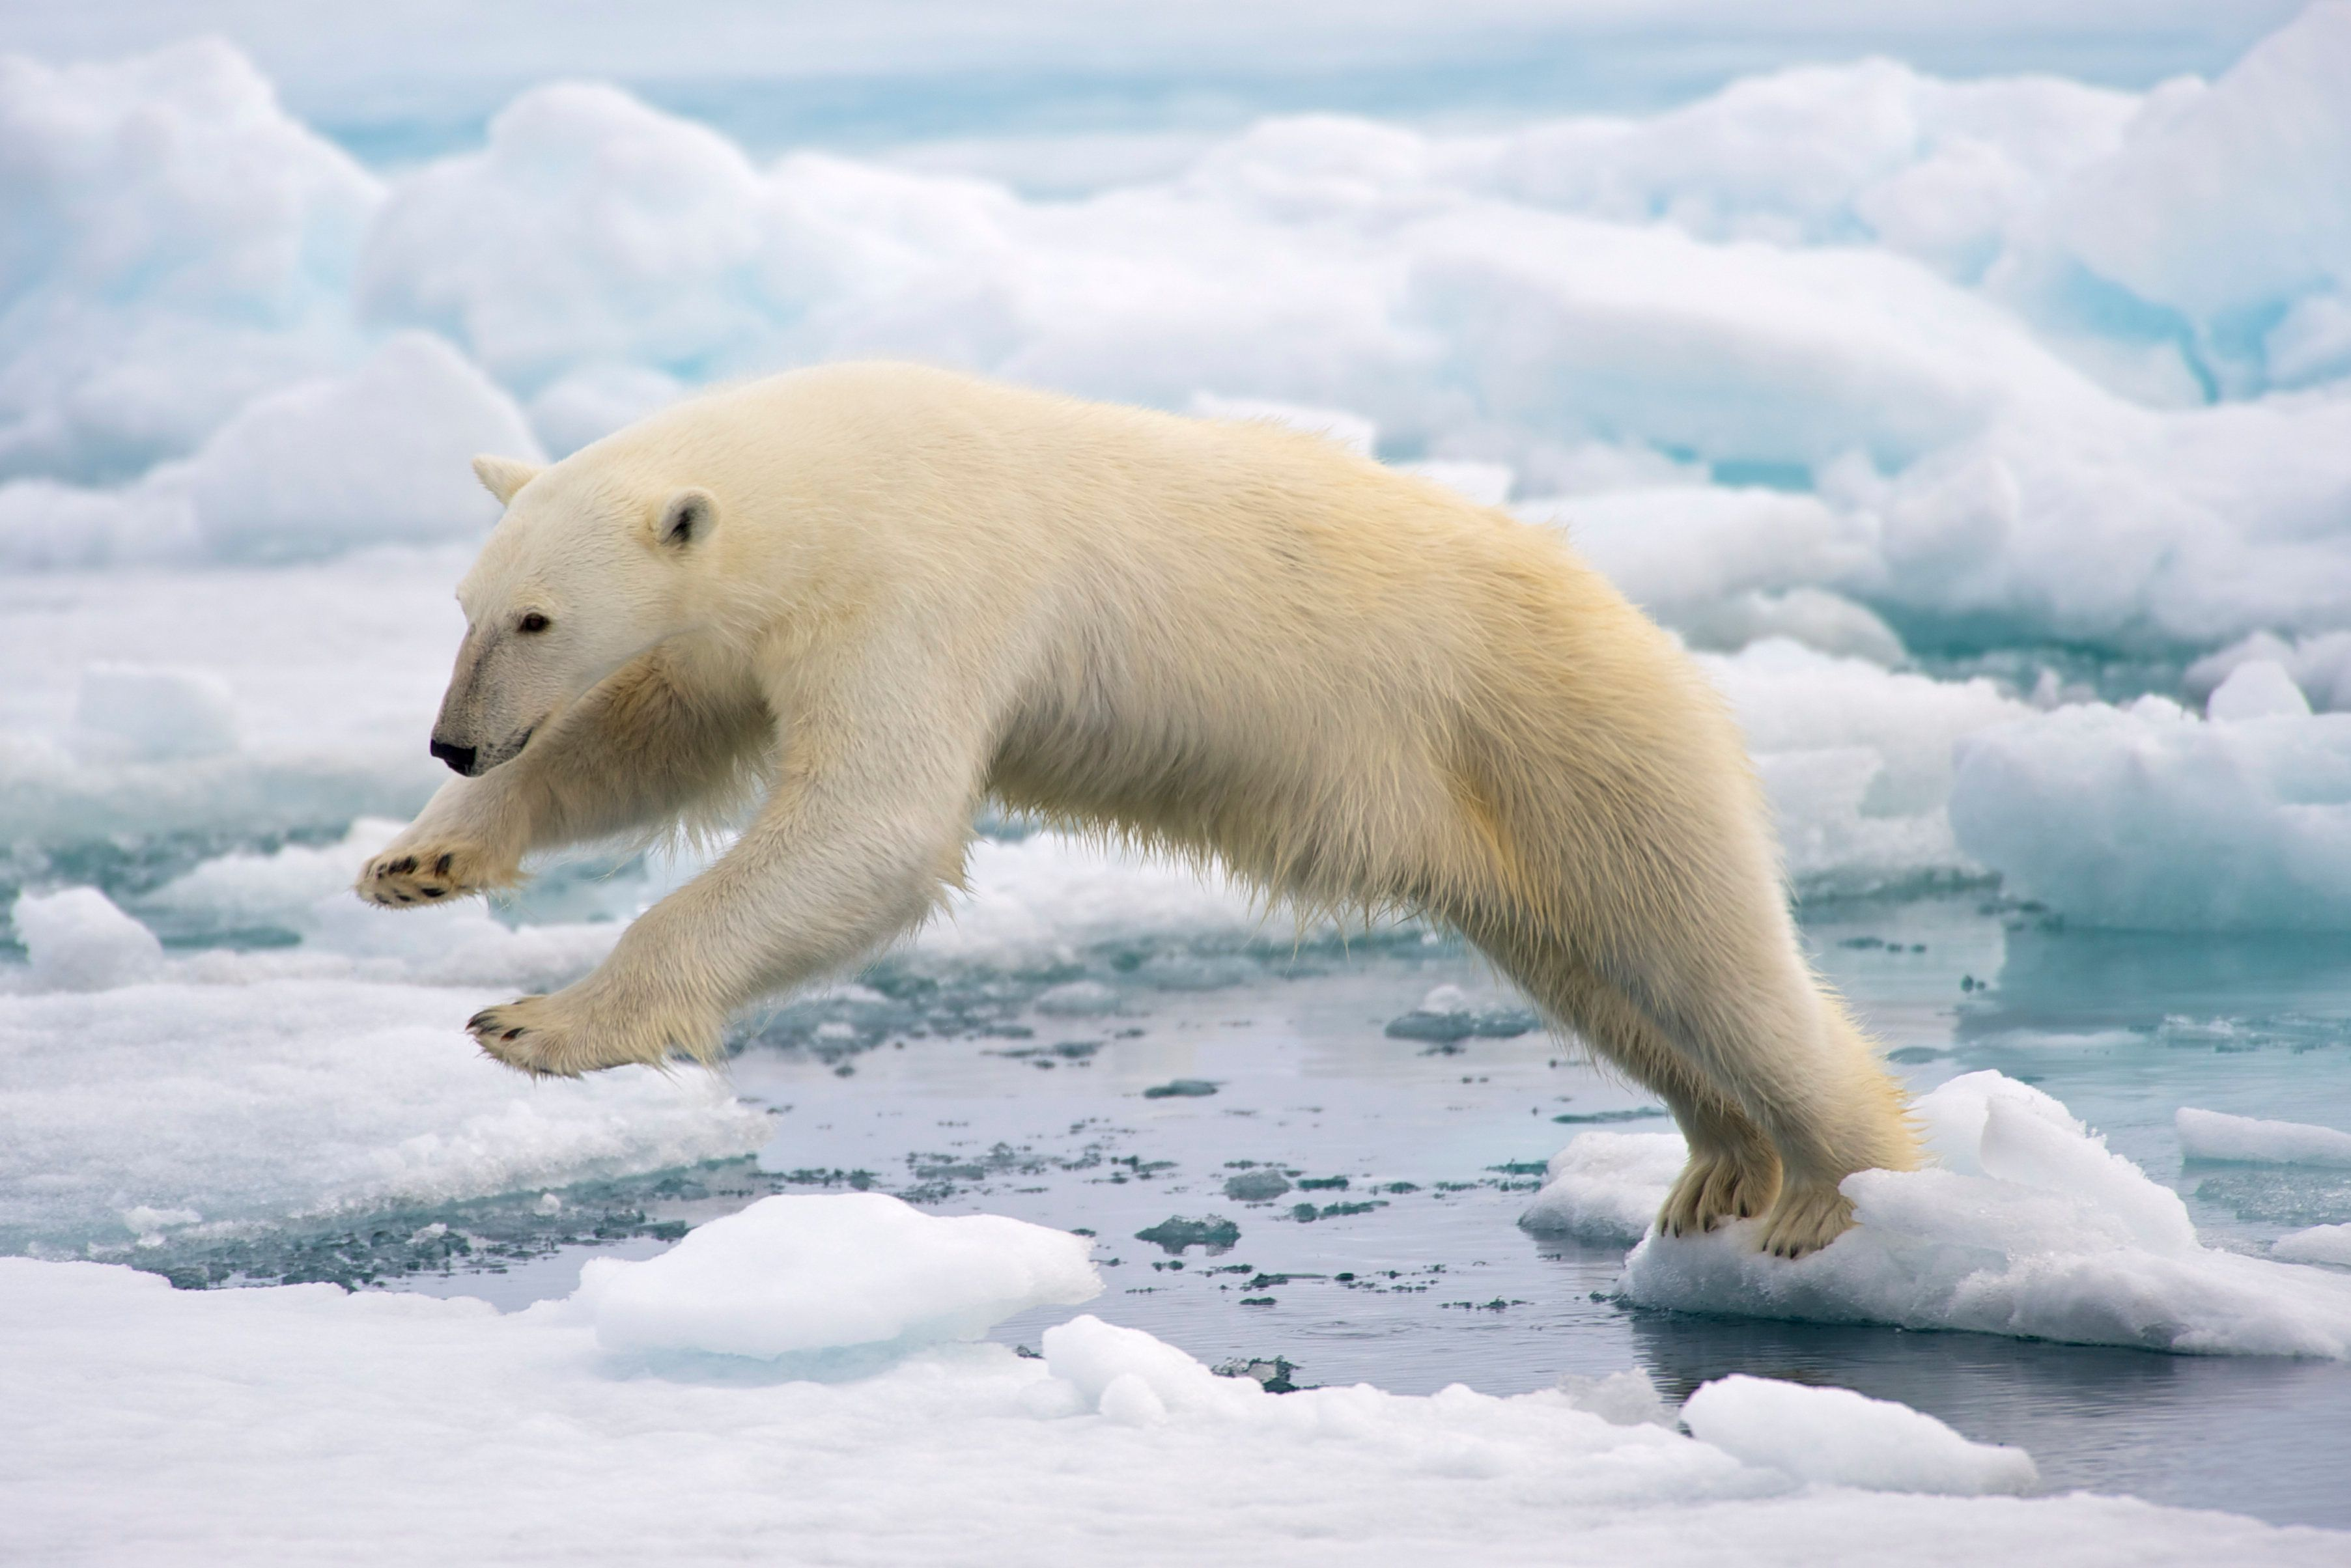 A male polar bear (Ursus maritimus) jumping in the pack ice, its movement frozen in the middle of the jump. Spitsbergen, Svalbard archipelago, Norway.